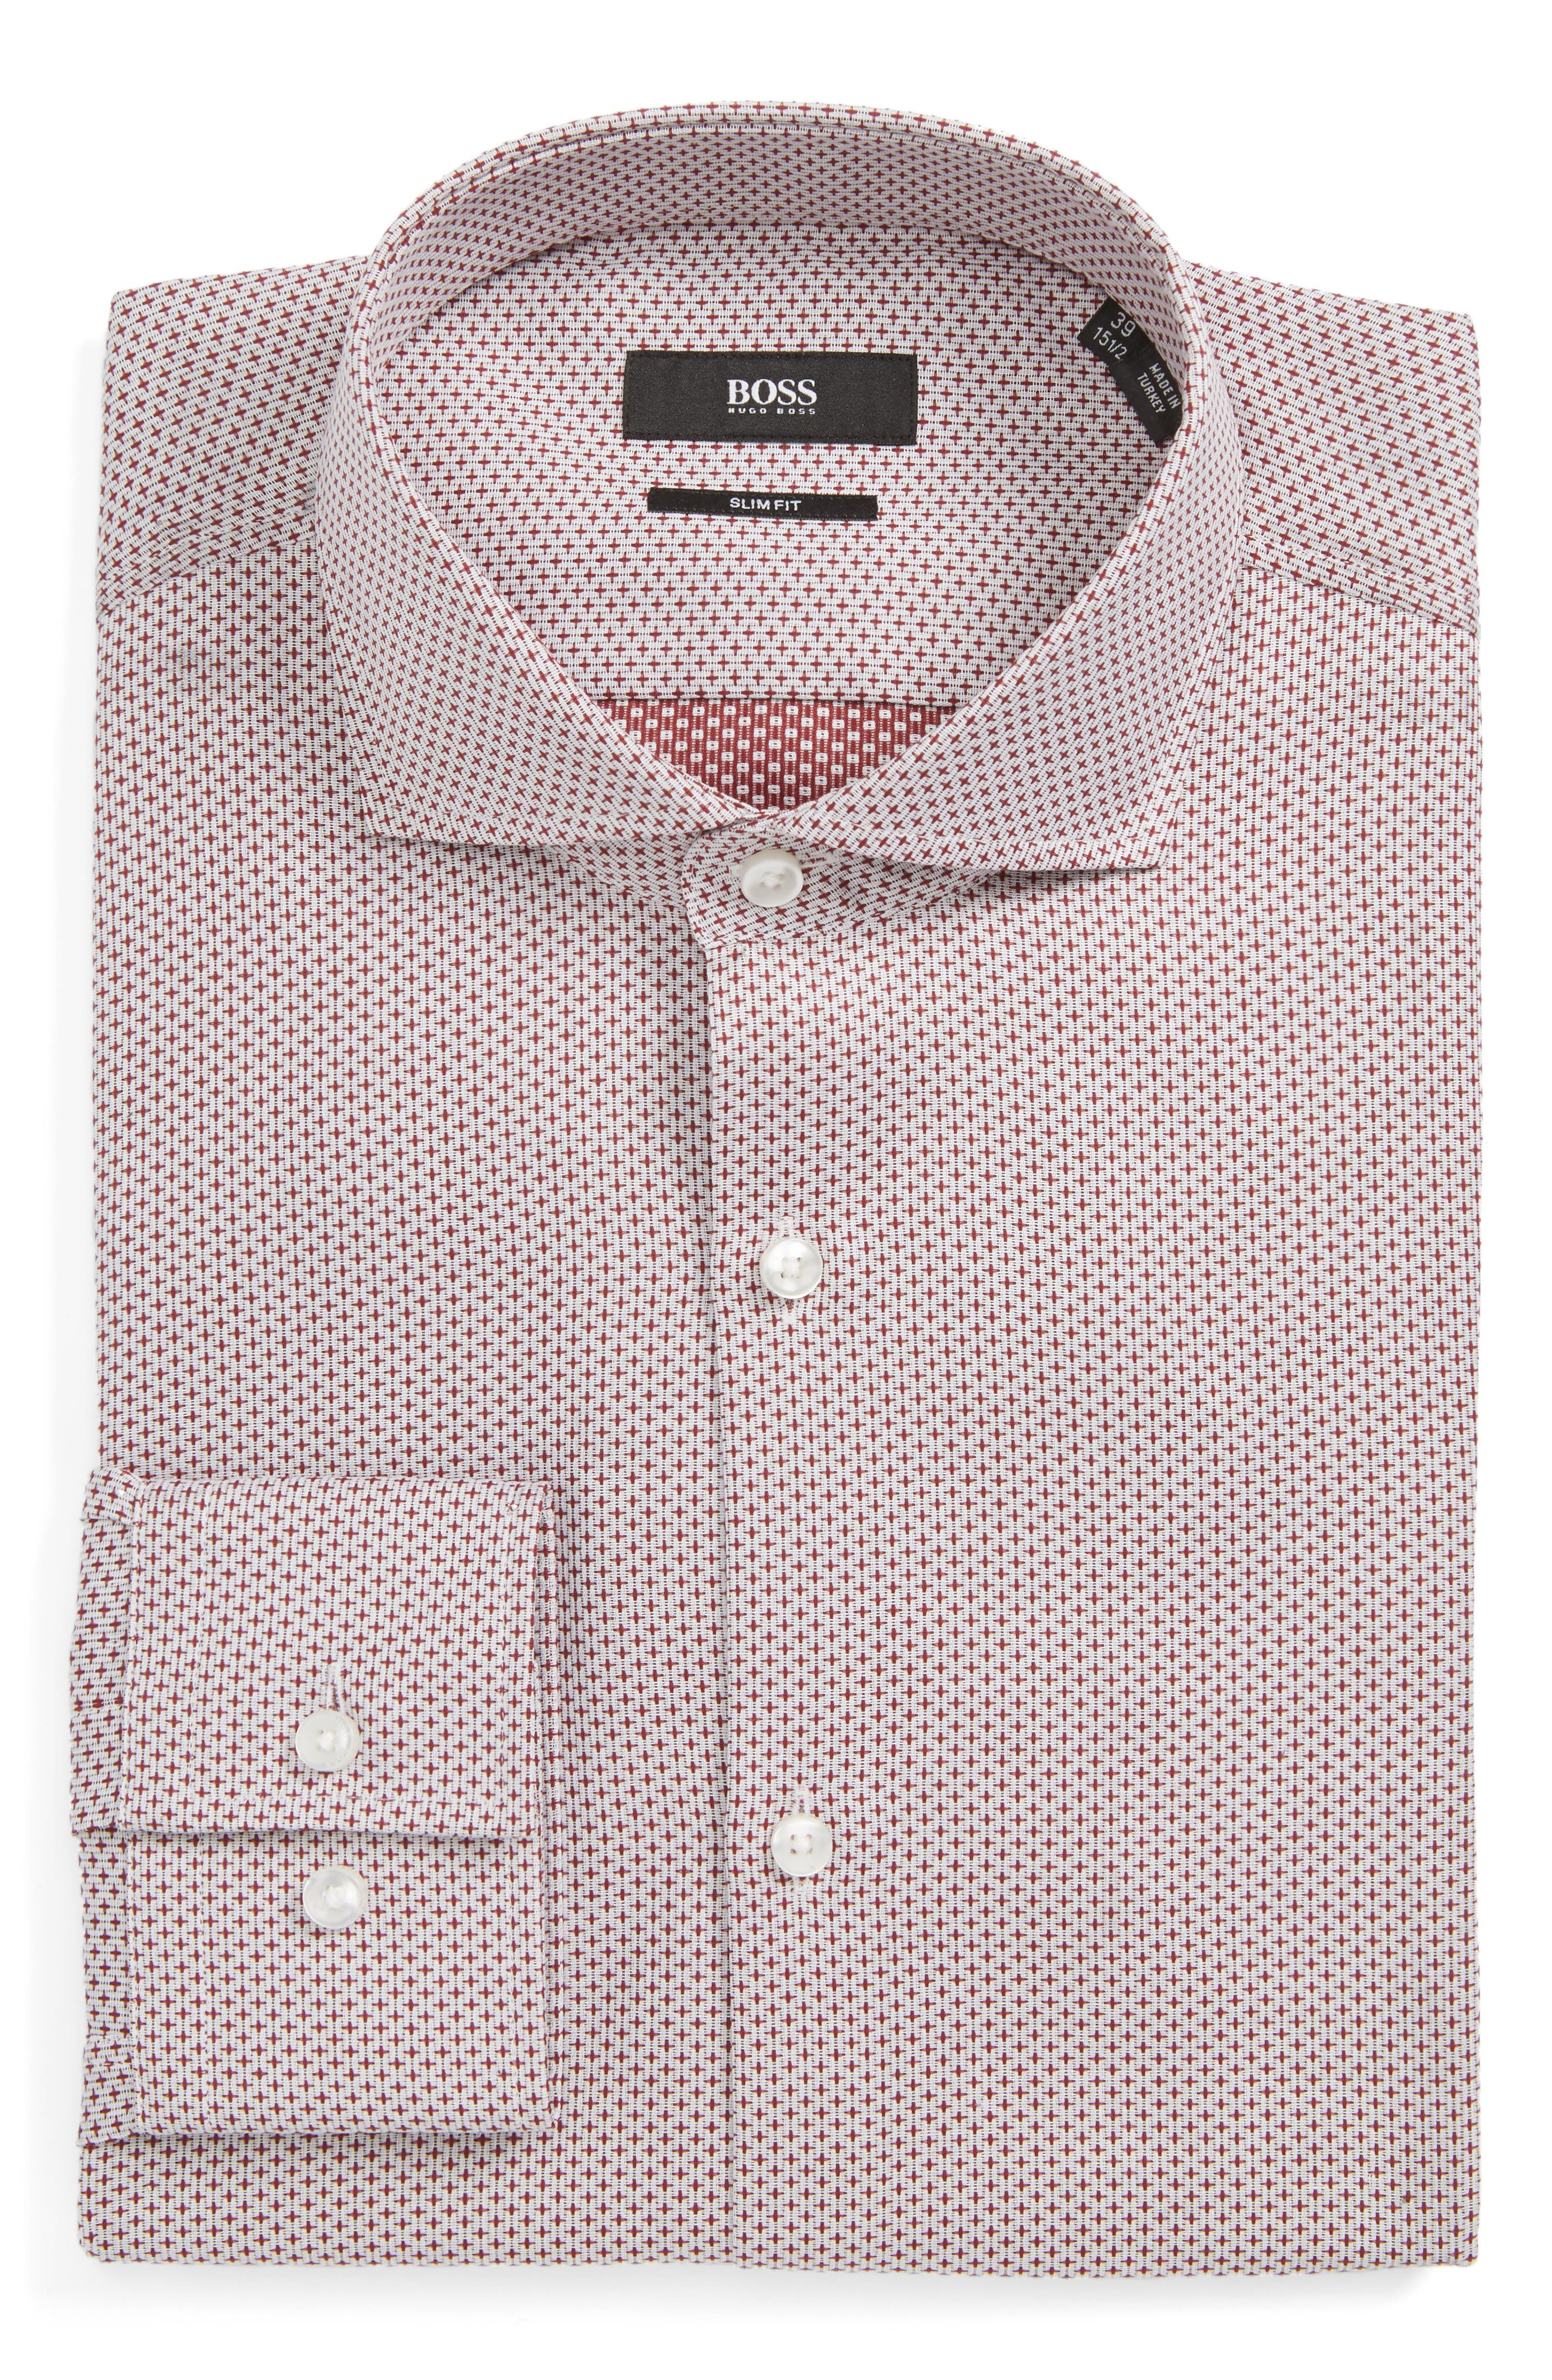 Jason Slim Fit Dress Shirt,                             Main thumbnail 1, color,                             930